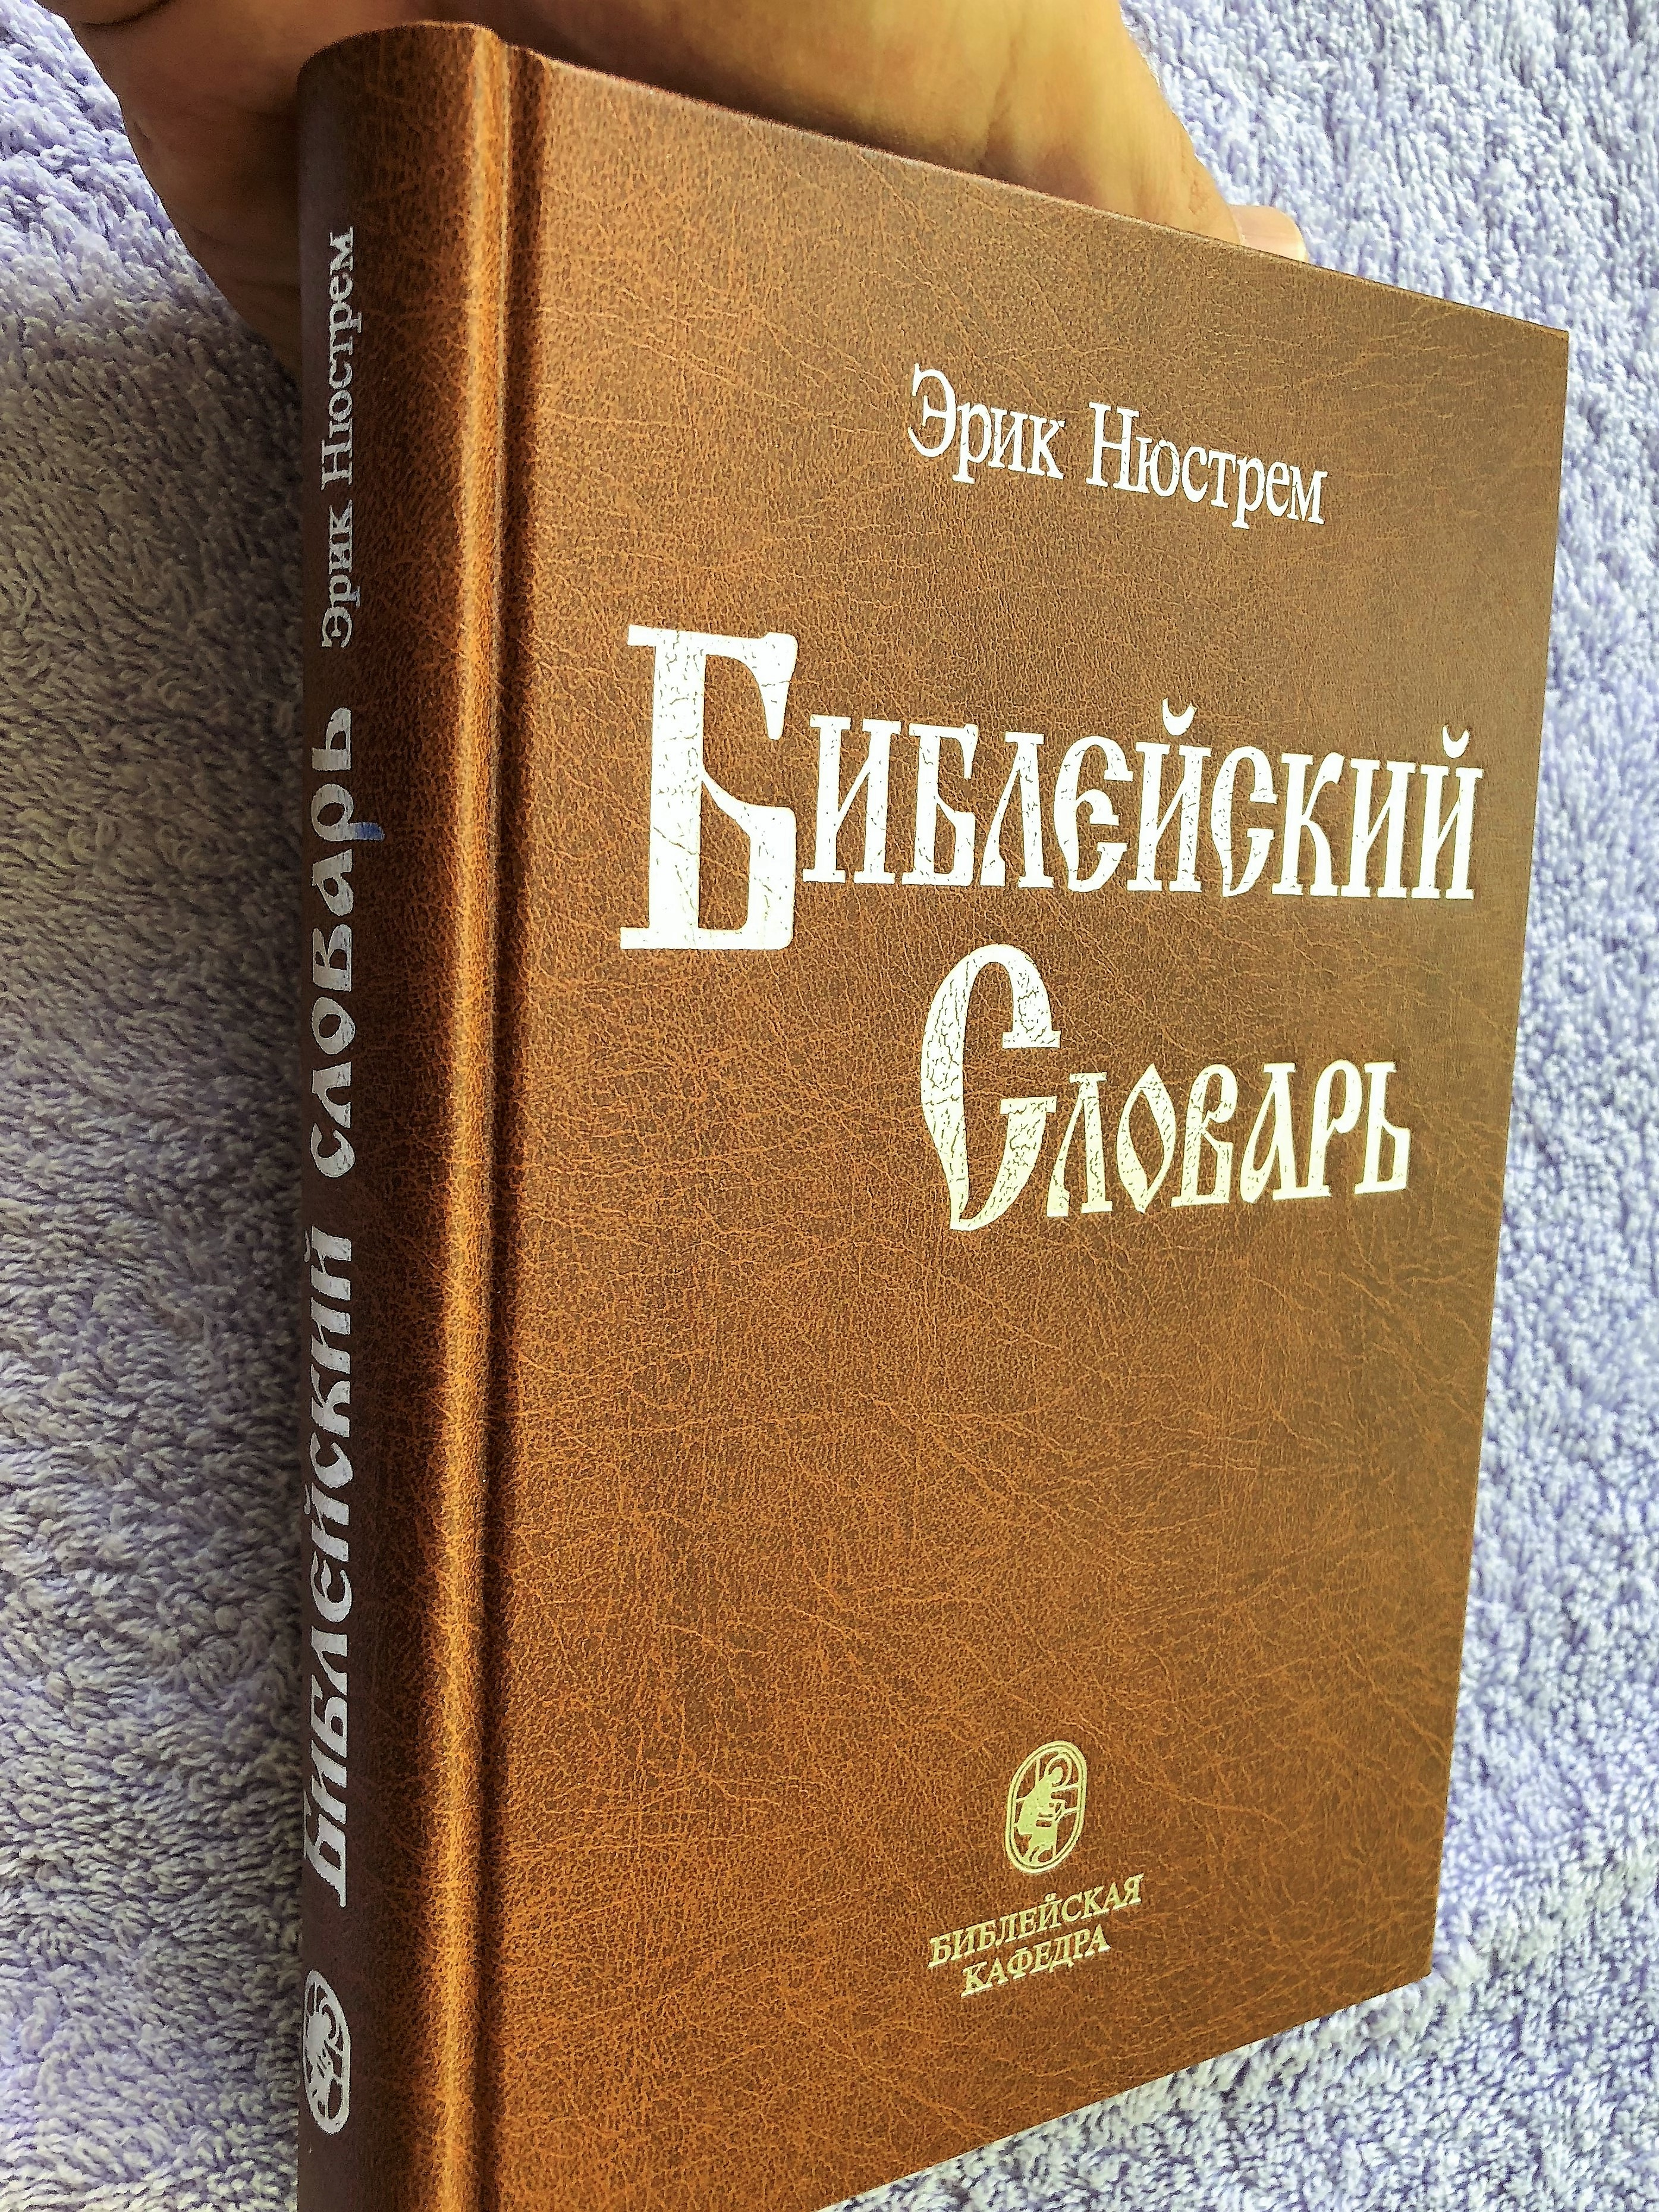 russian-bible-dictionary-encyclopedic-dictionary-in-russian-compiled-by-eric-nustrem-20-.jpg